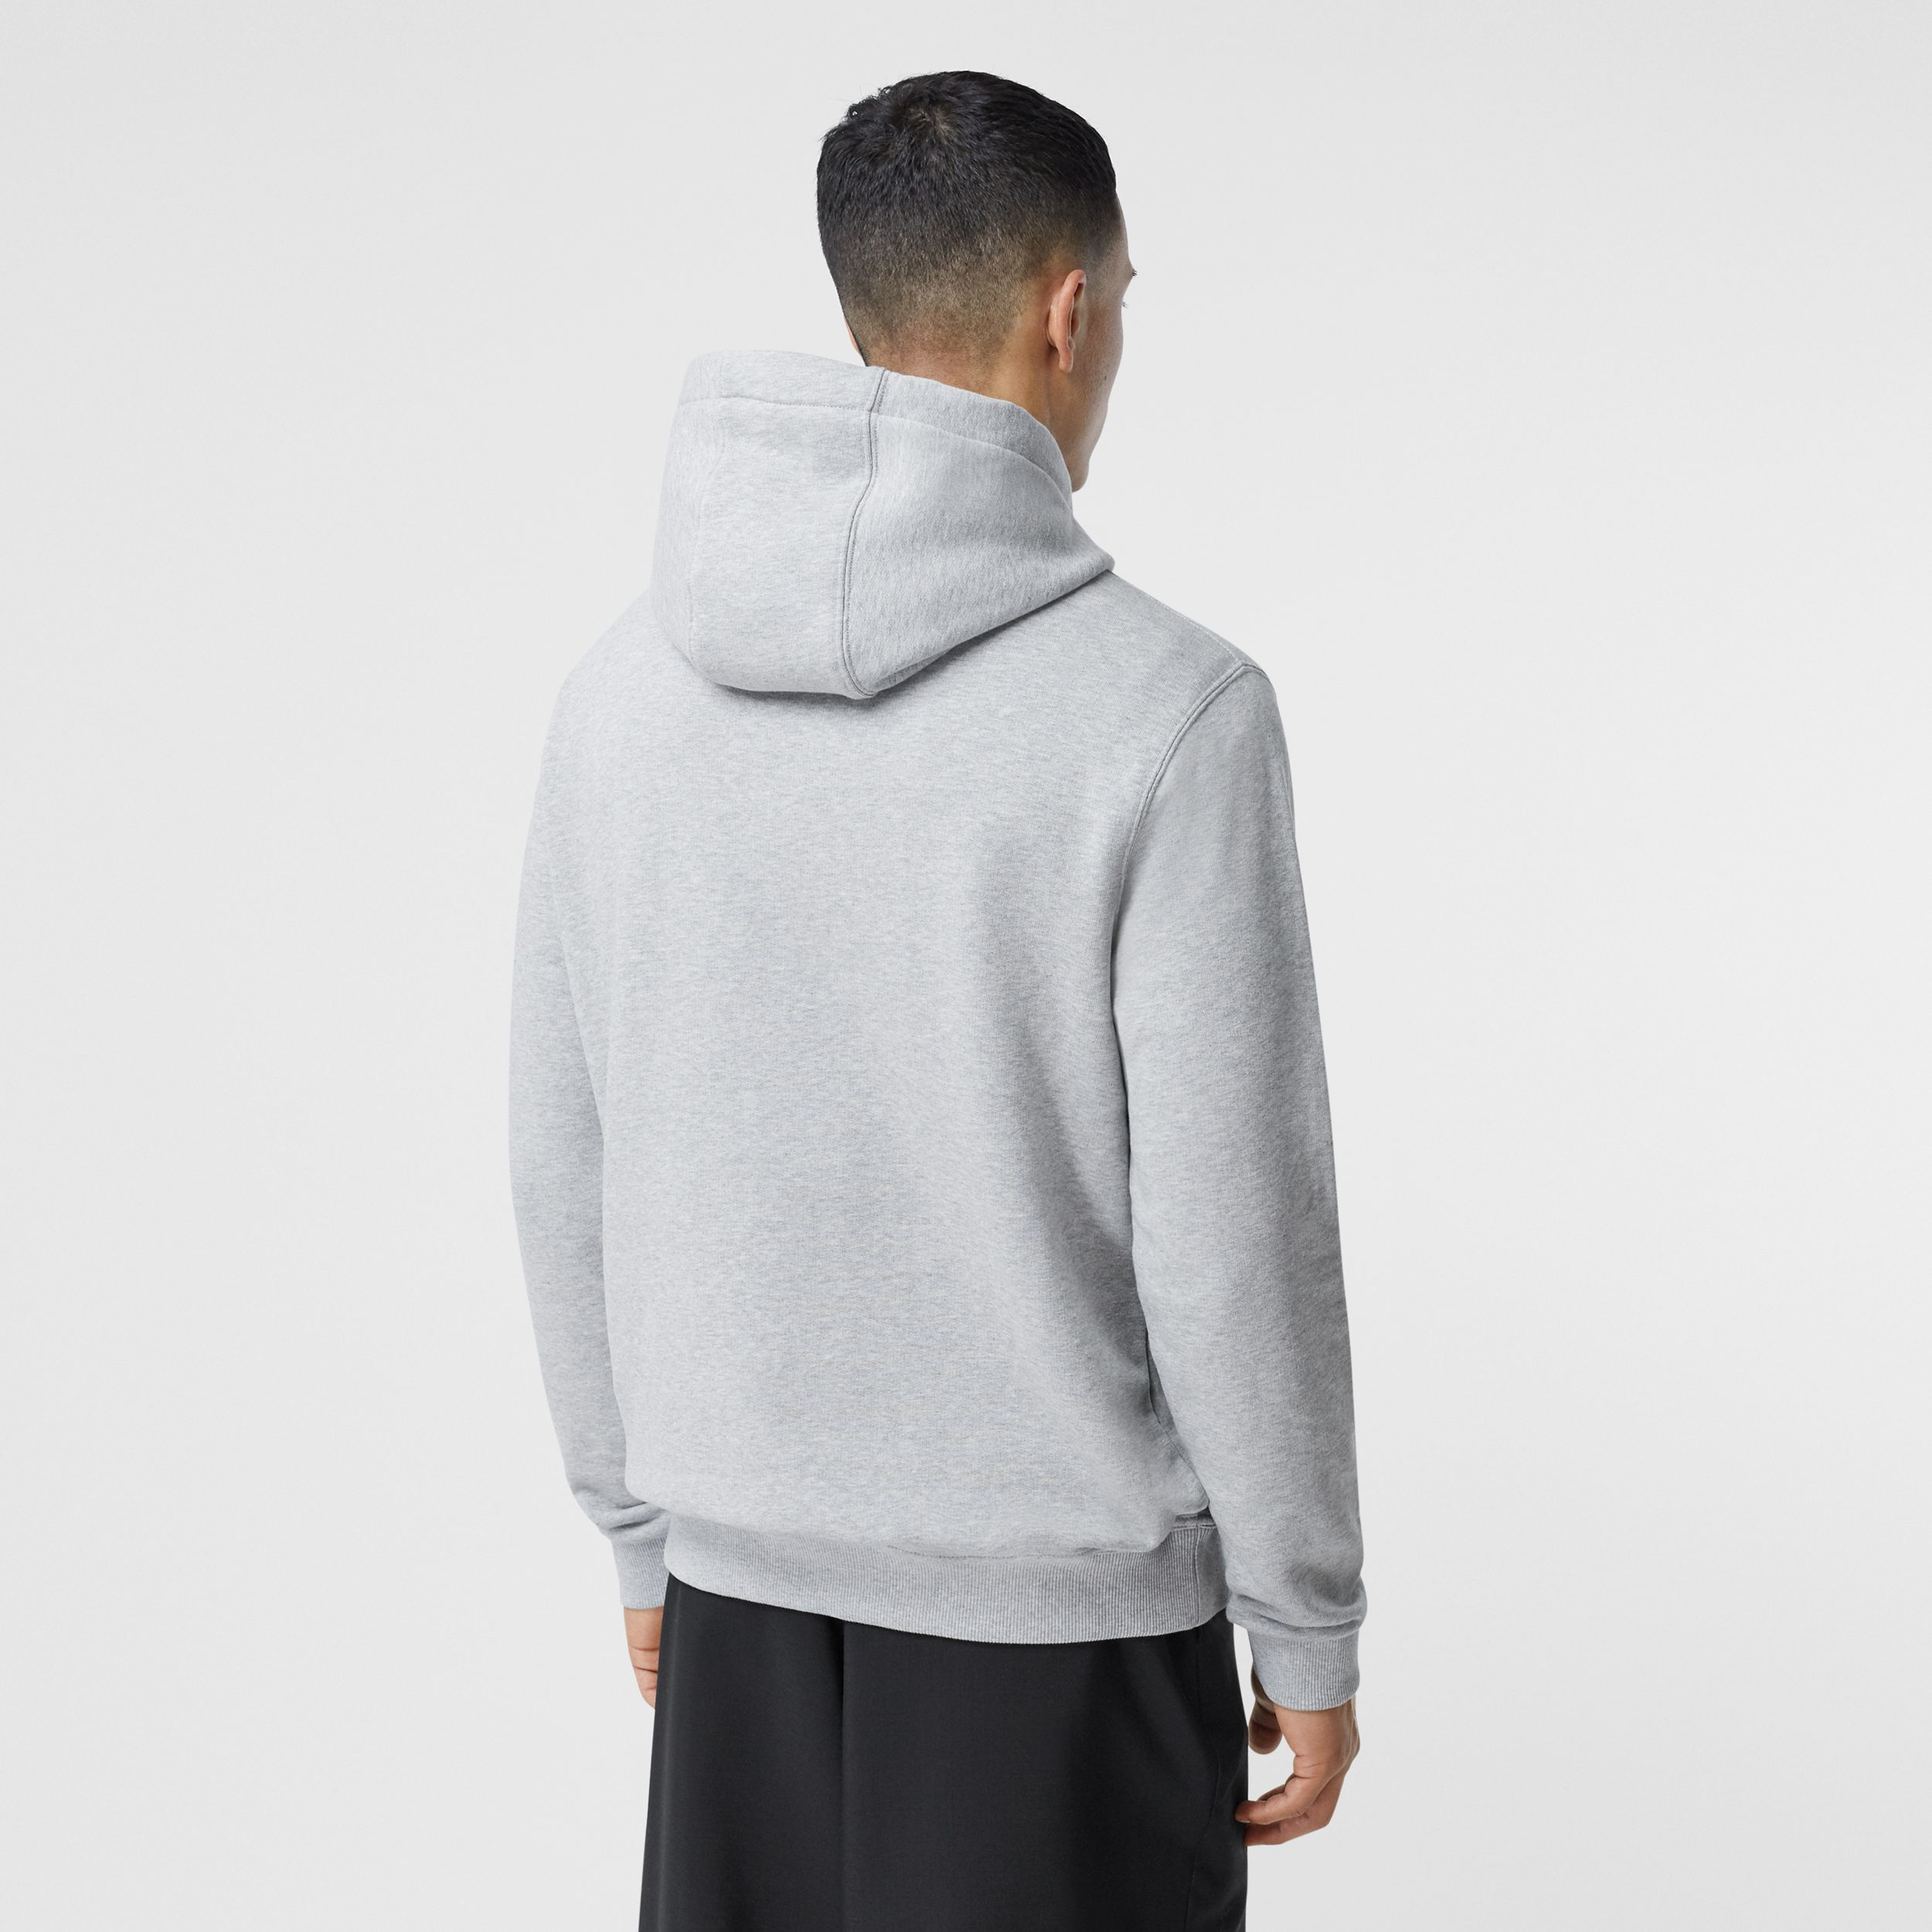 Montage Print Cotton Hoodie in Pale Grey Melange - Men | Burberry Canada - 3